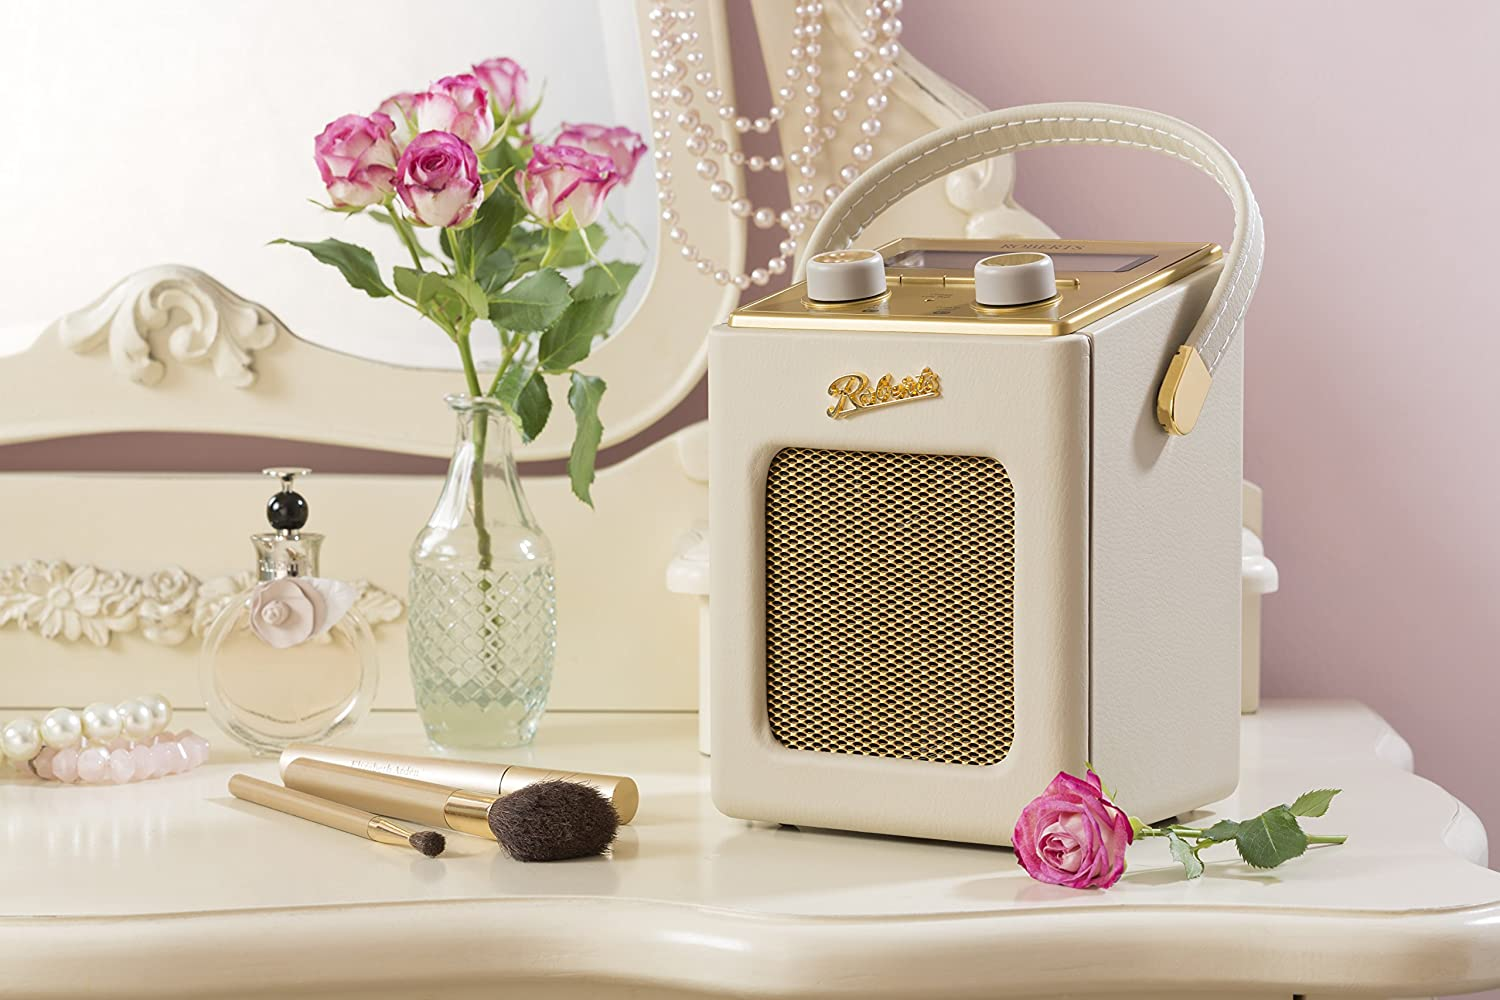 Roberts Revival Mini DAB/DAB+/FM Digital Radio Pastel Cream